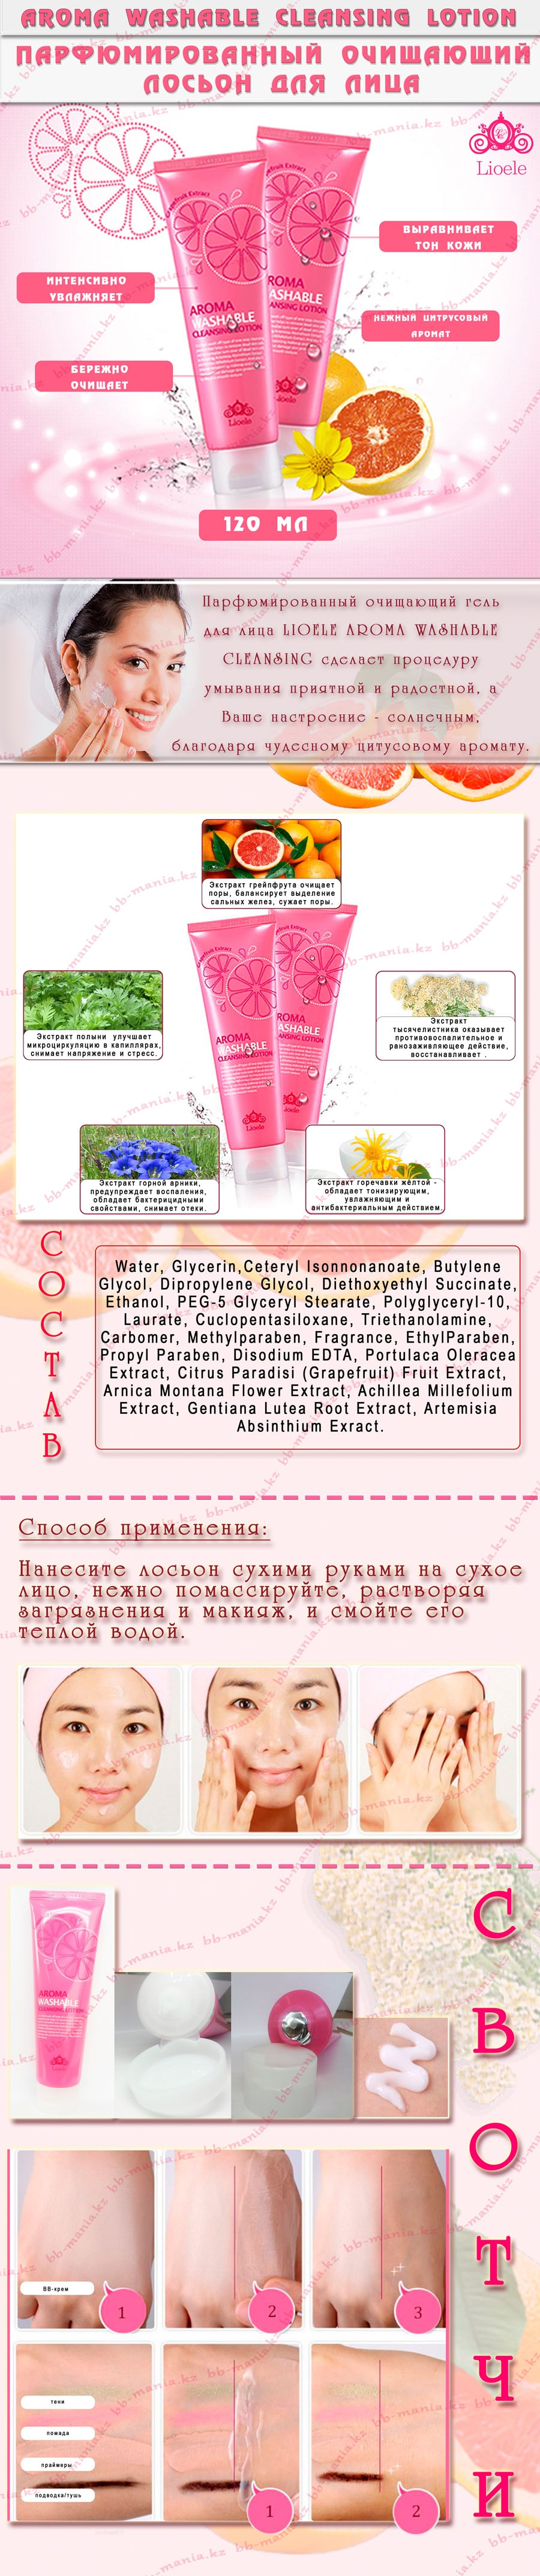 aroma-washable-cleansing-min